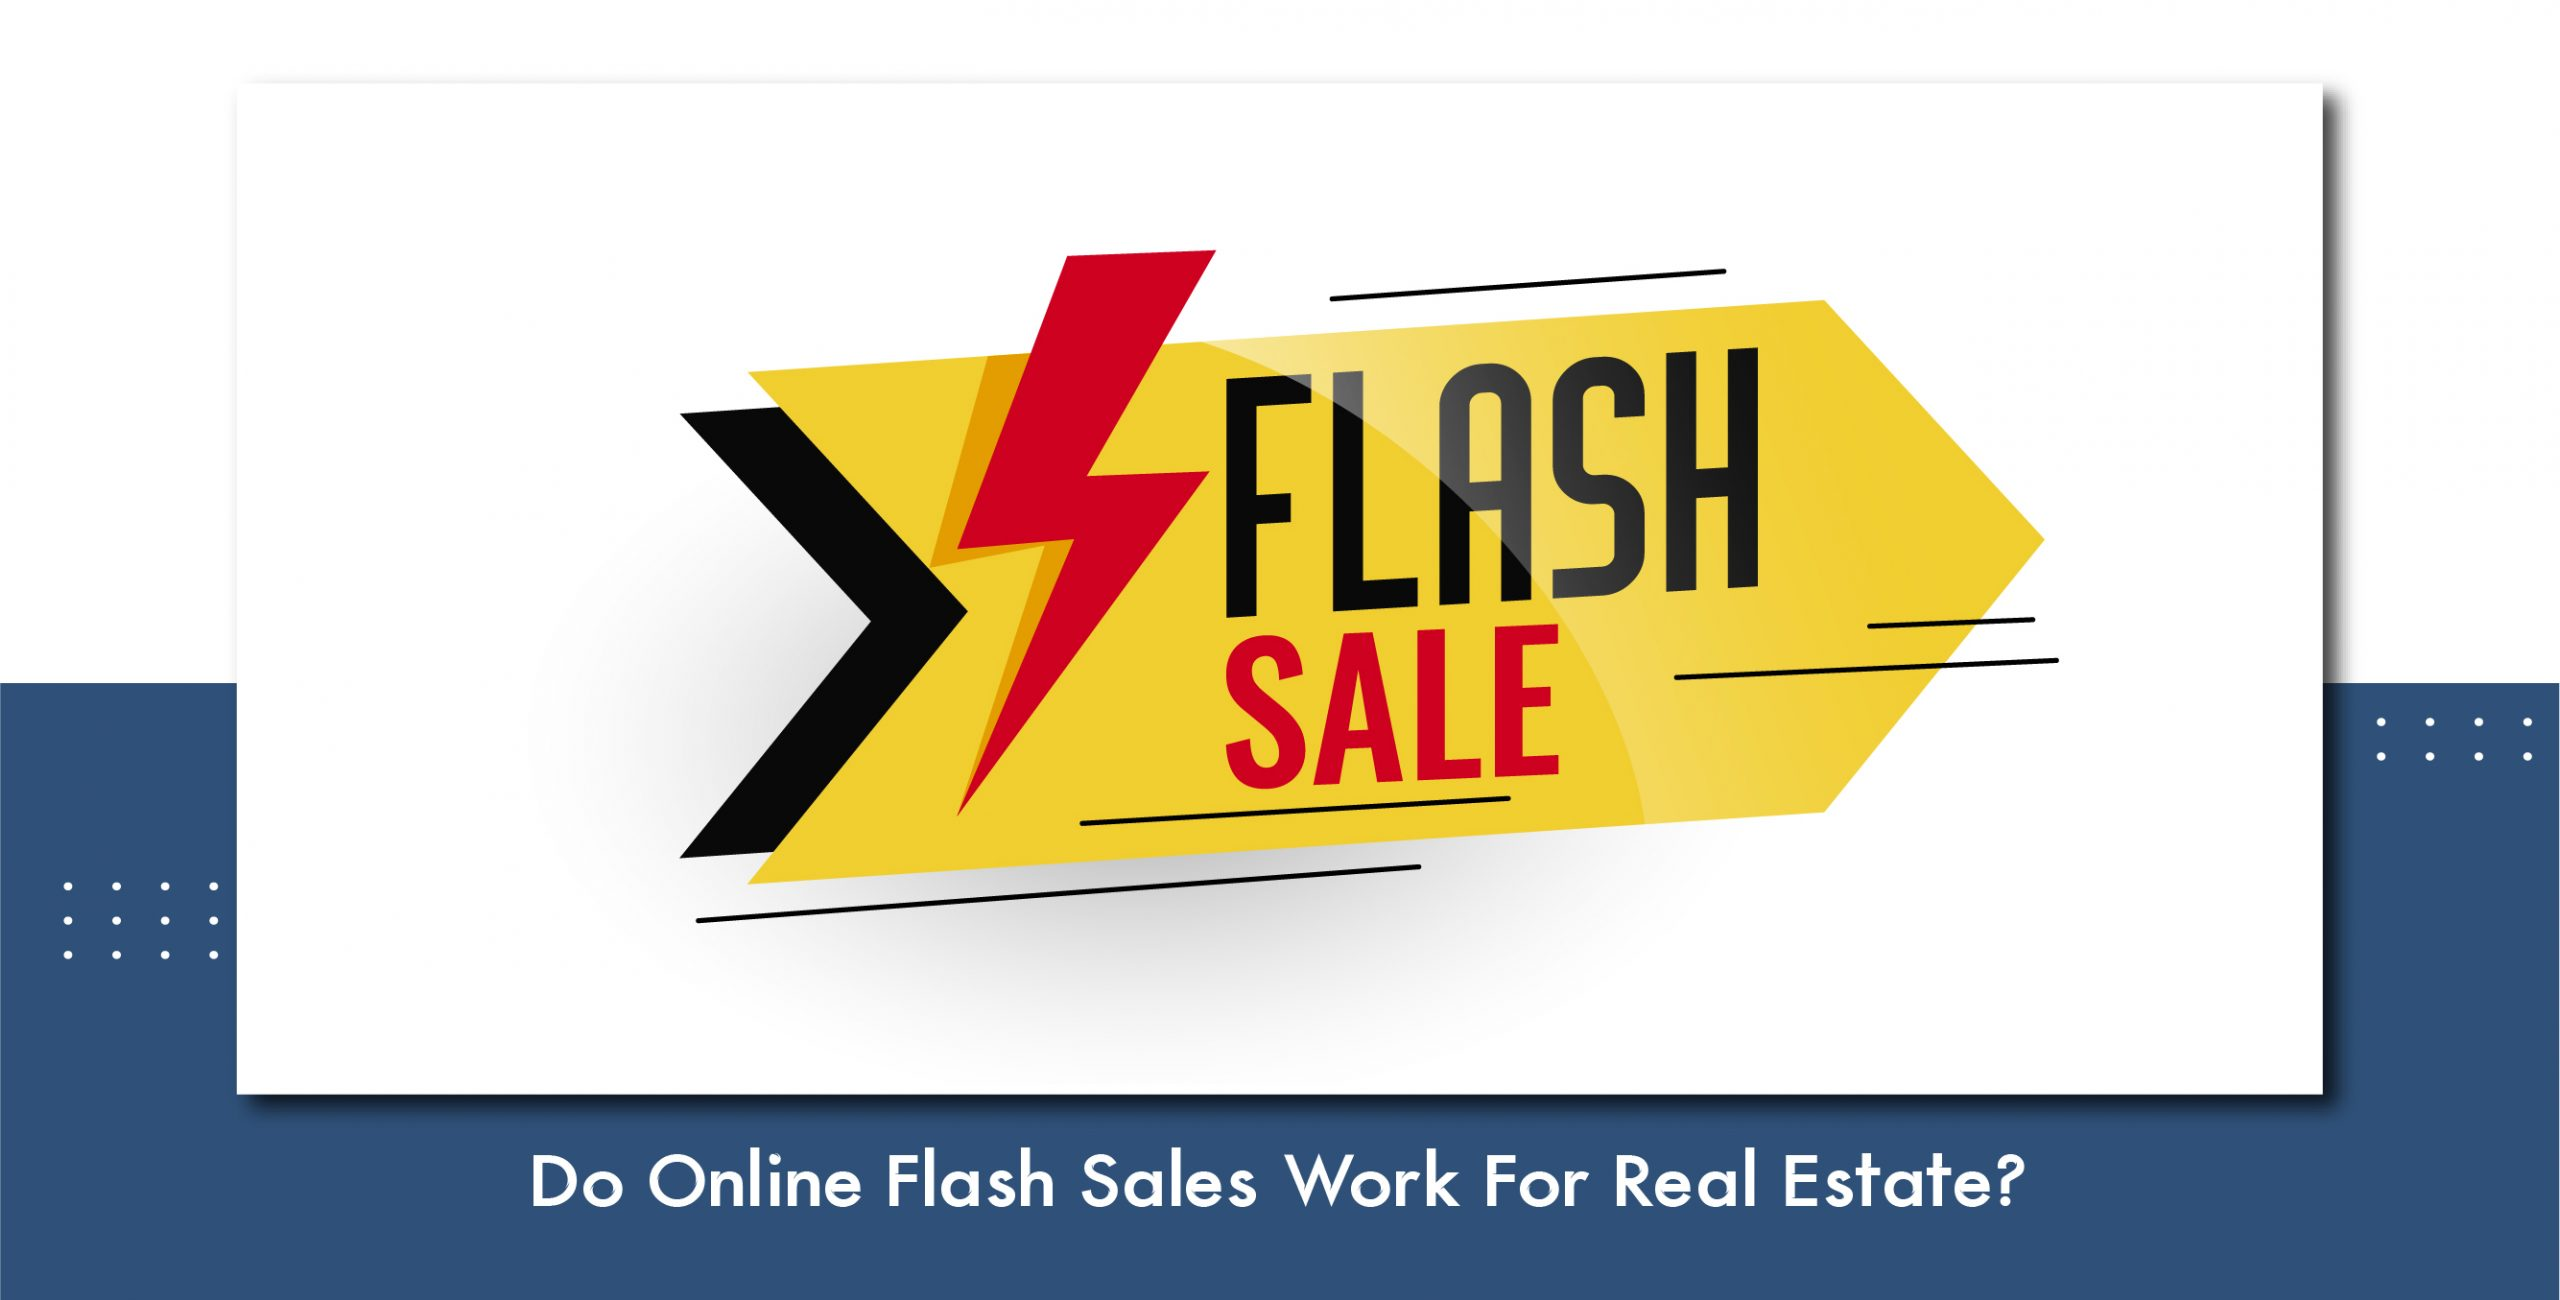 Do Online Flash Sales Work For Real Estate?